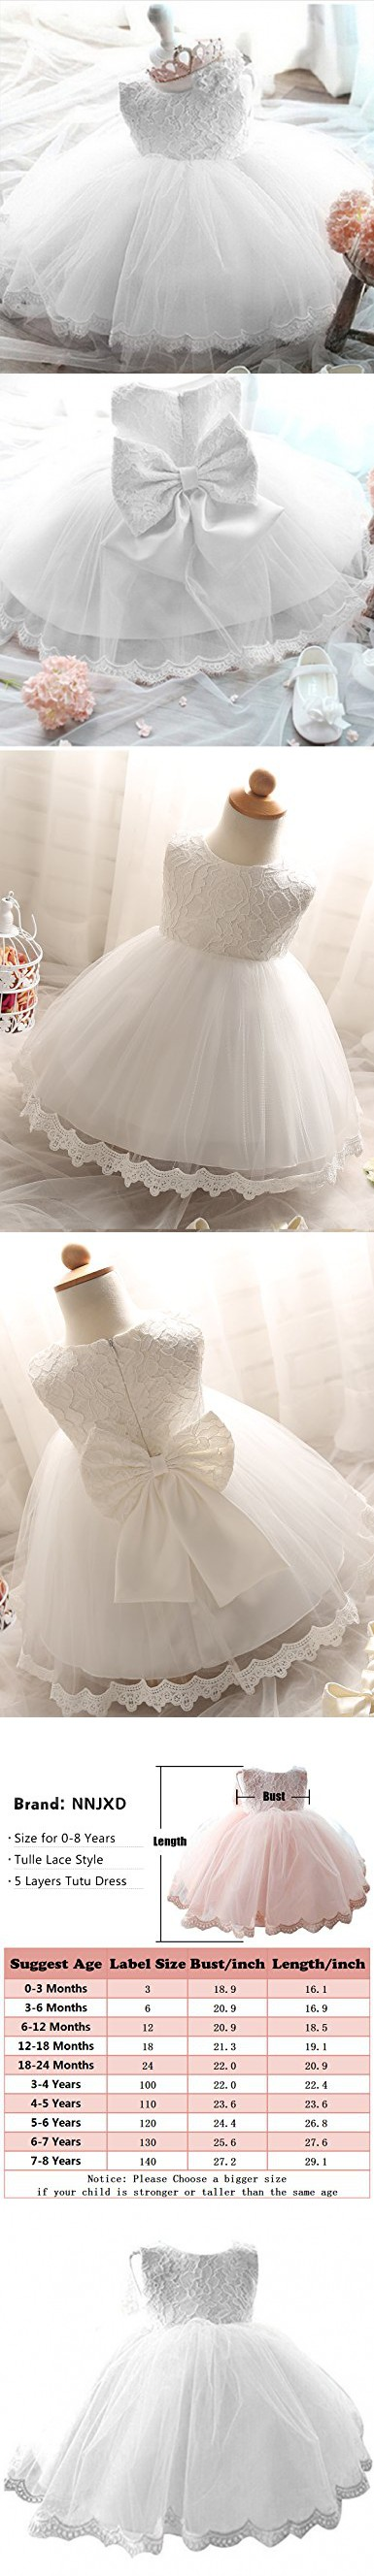 263fd8f3c8 NNJXD Girls  Tulle Flower Princess Wedding Dress For Toddler and Baby Girl  White 0-3 Months